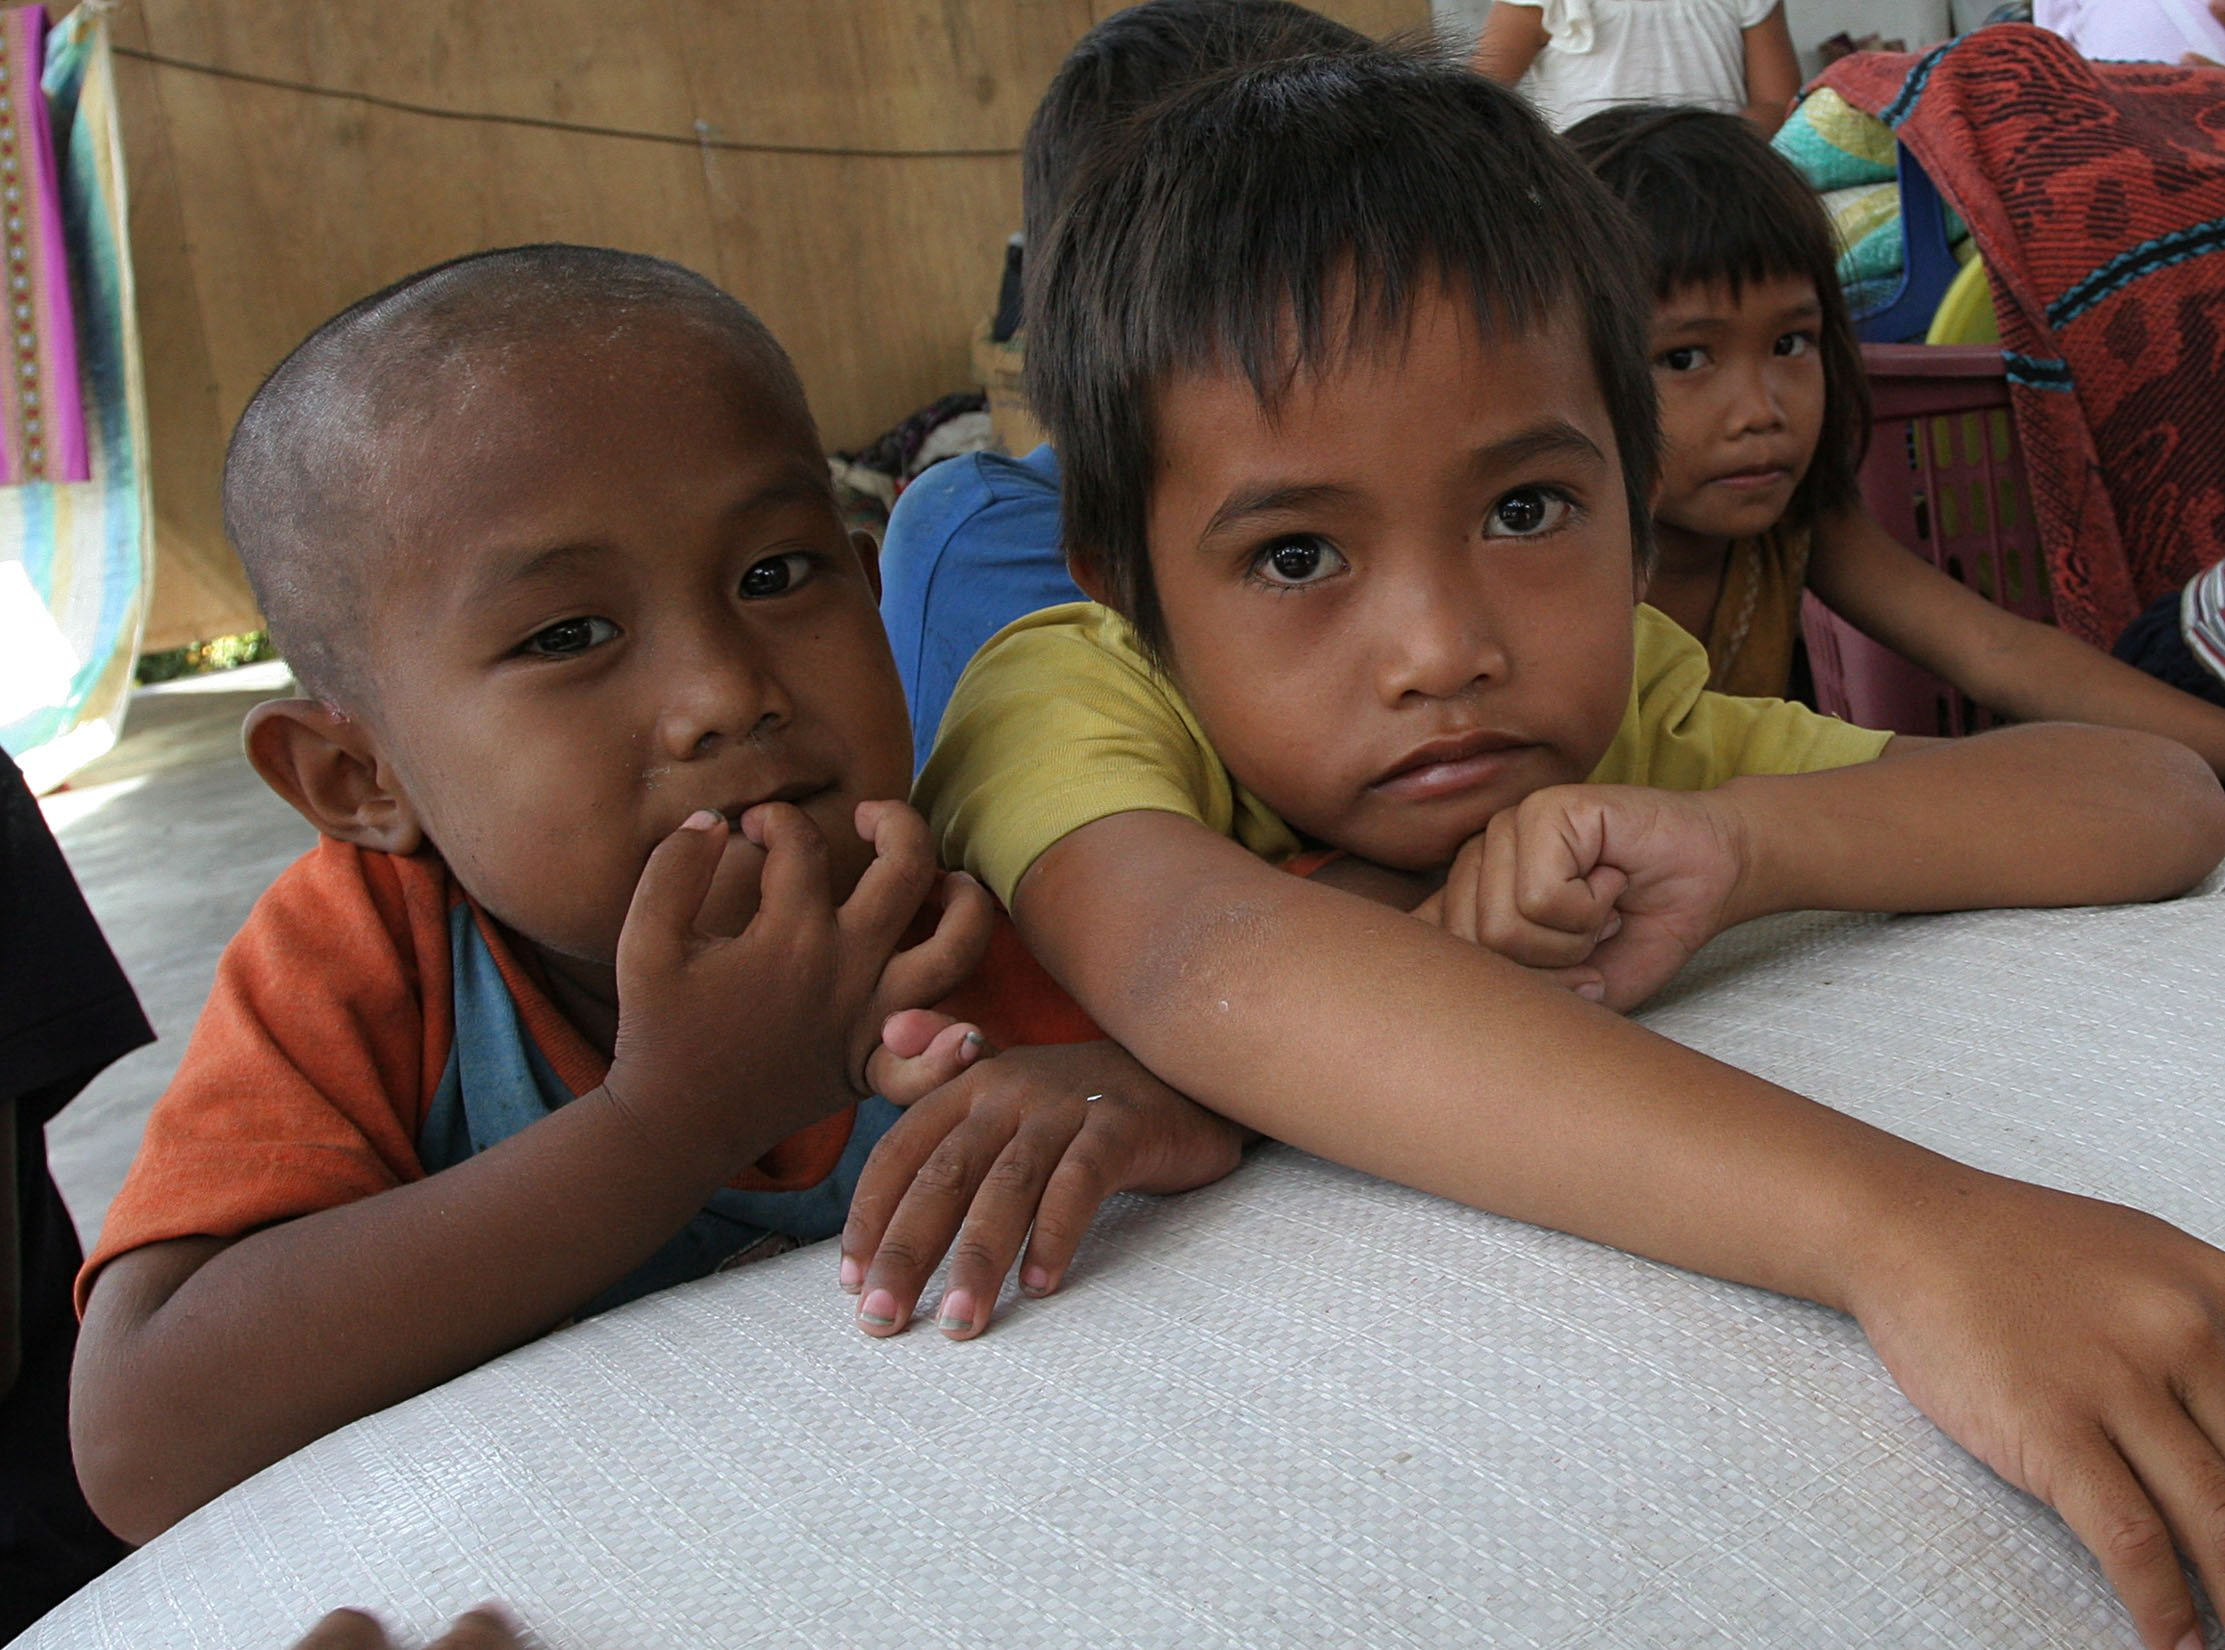 Datu Piang, Maguindanao - Children at an IDP camp in the southern Philippine province of Datu Piang wait for their parents lining up for food aid in this picture taken shortly after the MILF launched large scale attacks in August of 2008, leaving tens of